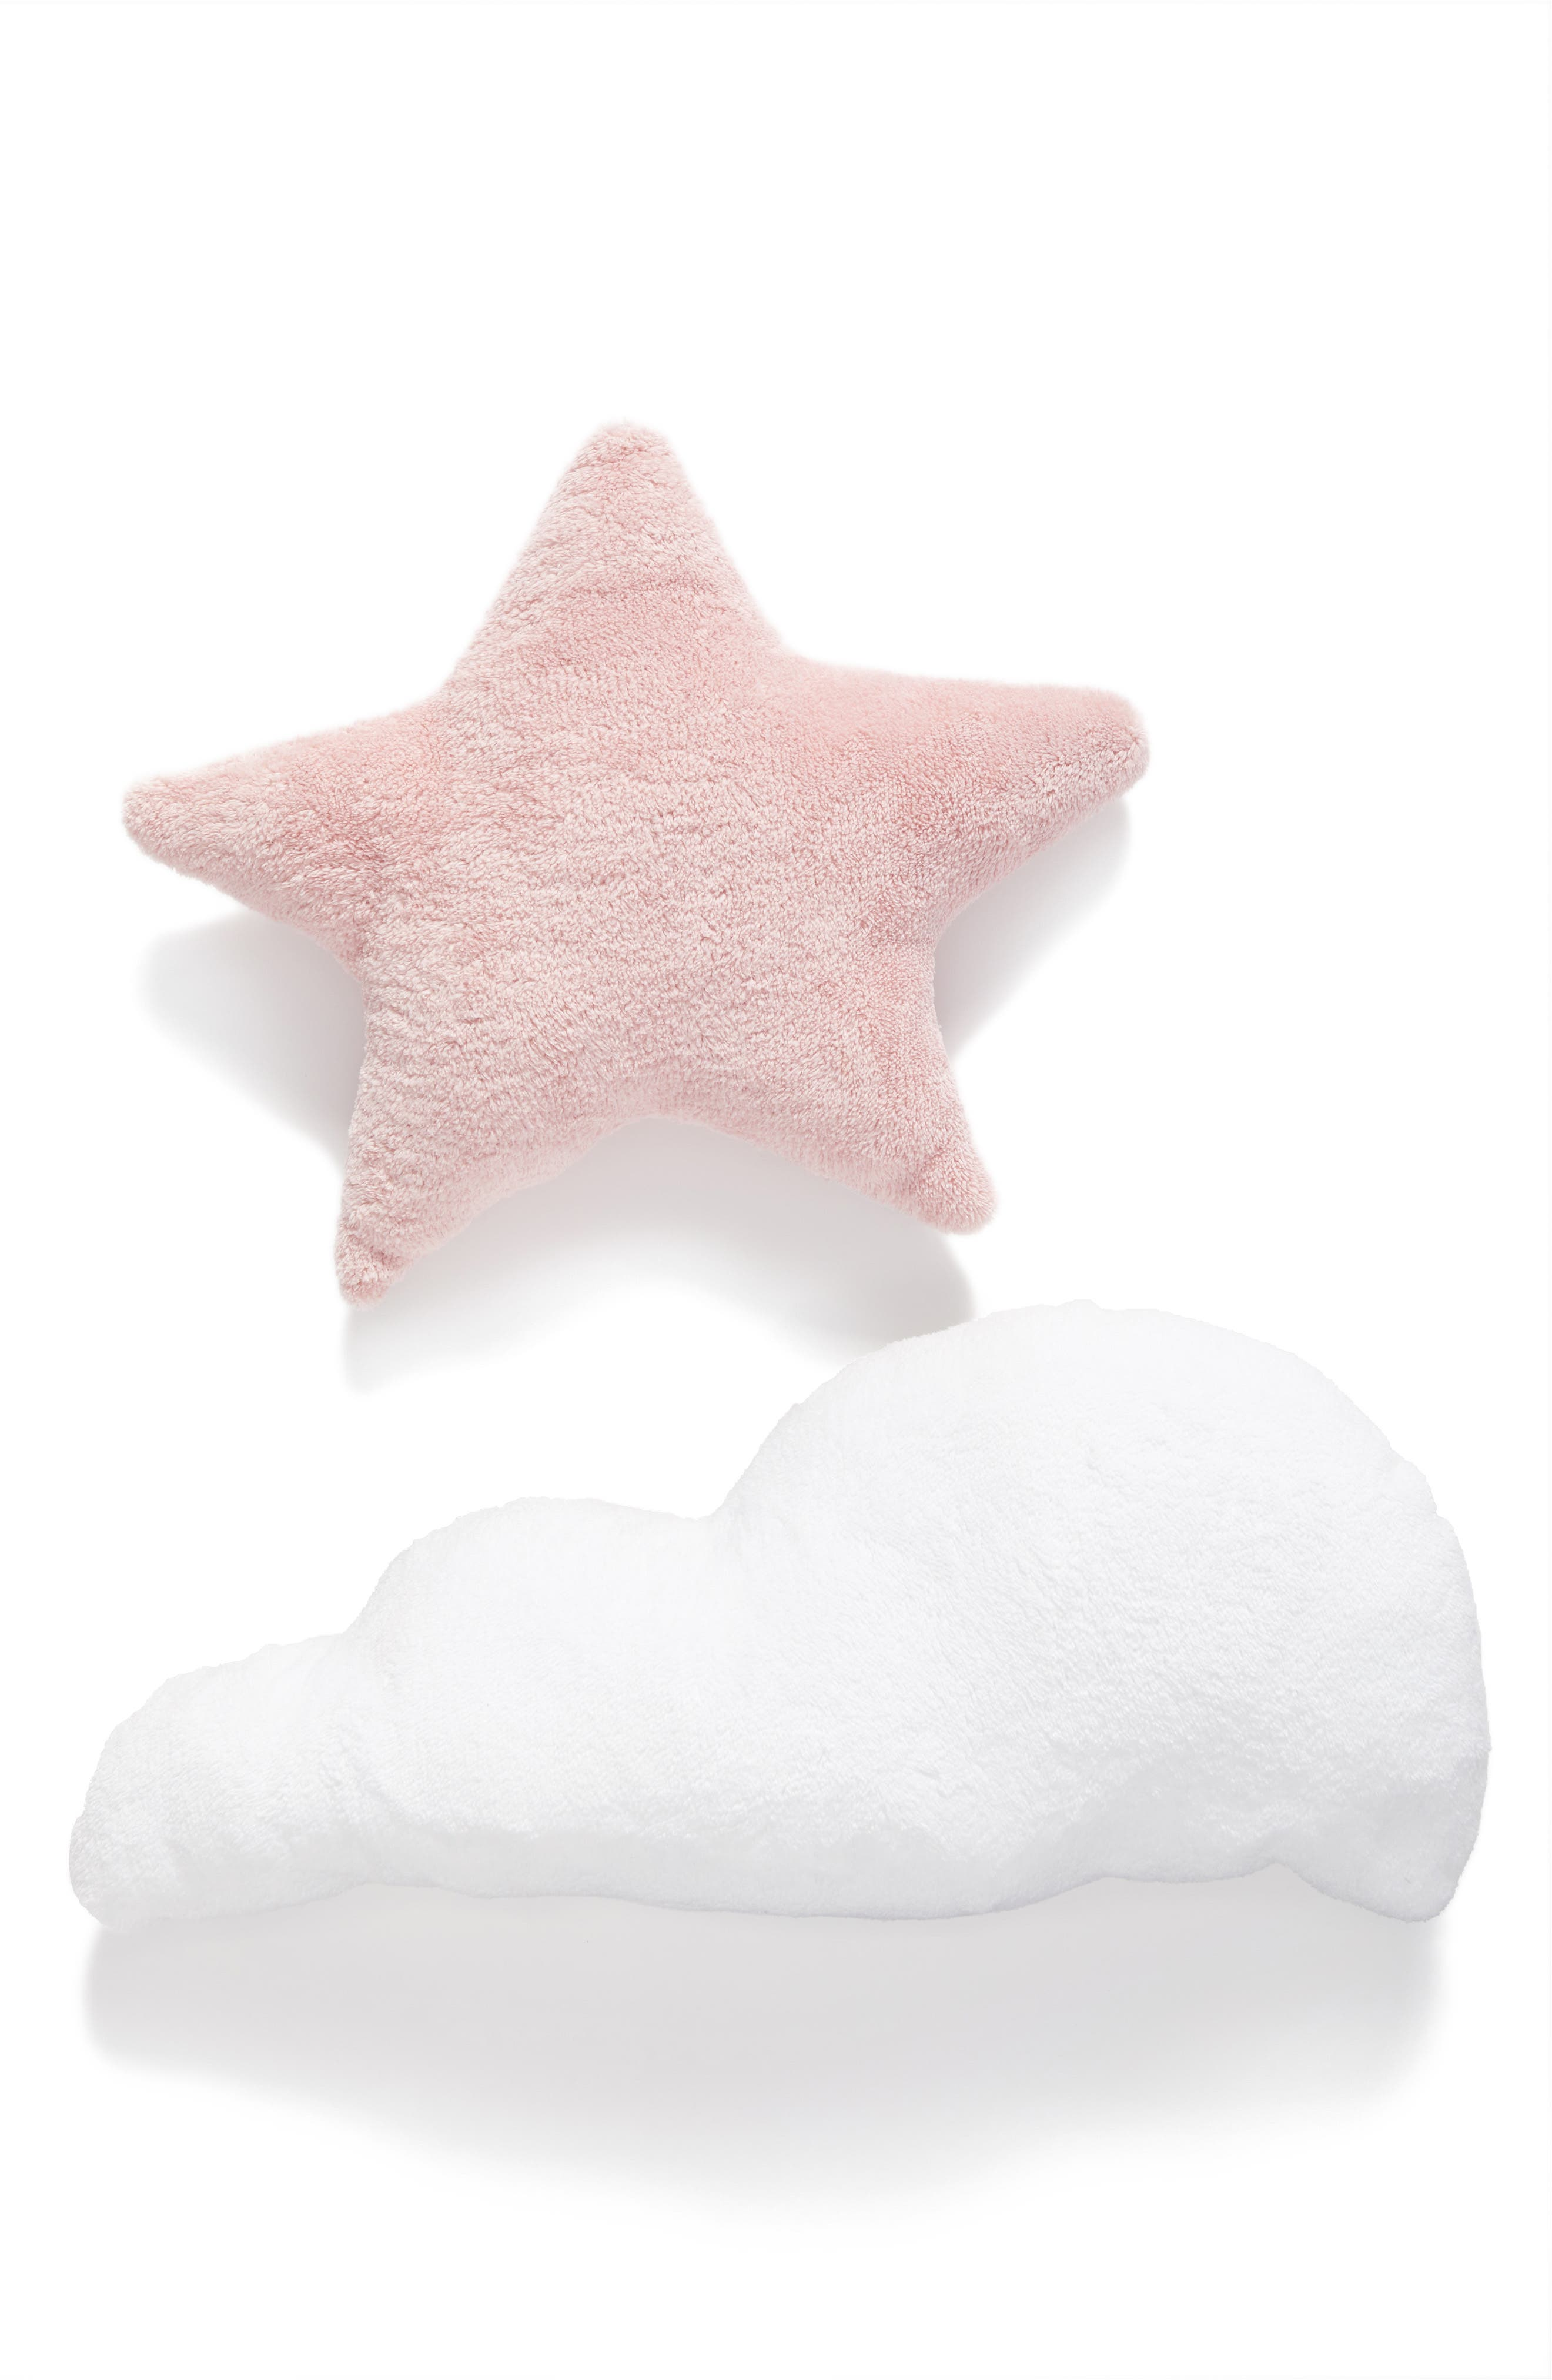 Main Image - Oilo Cloud & Star Pillows